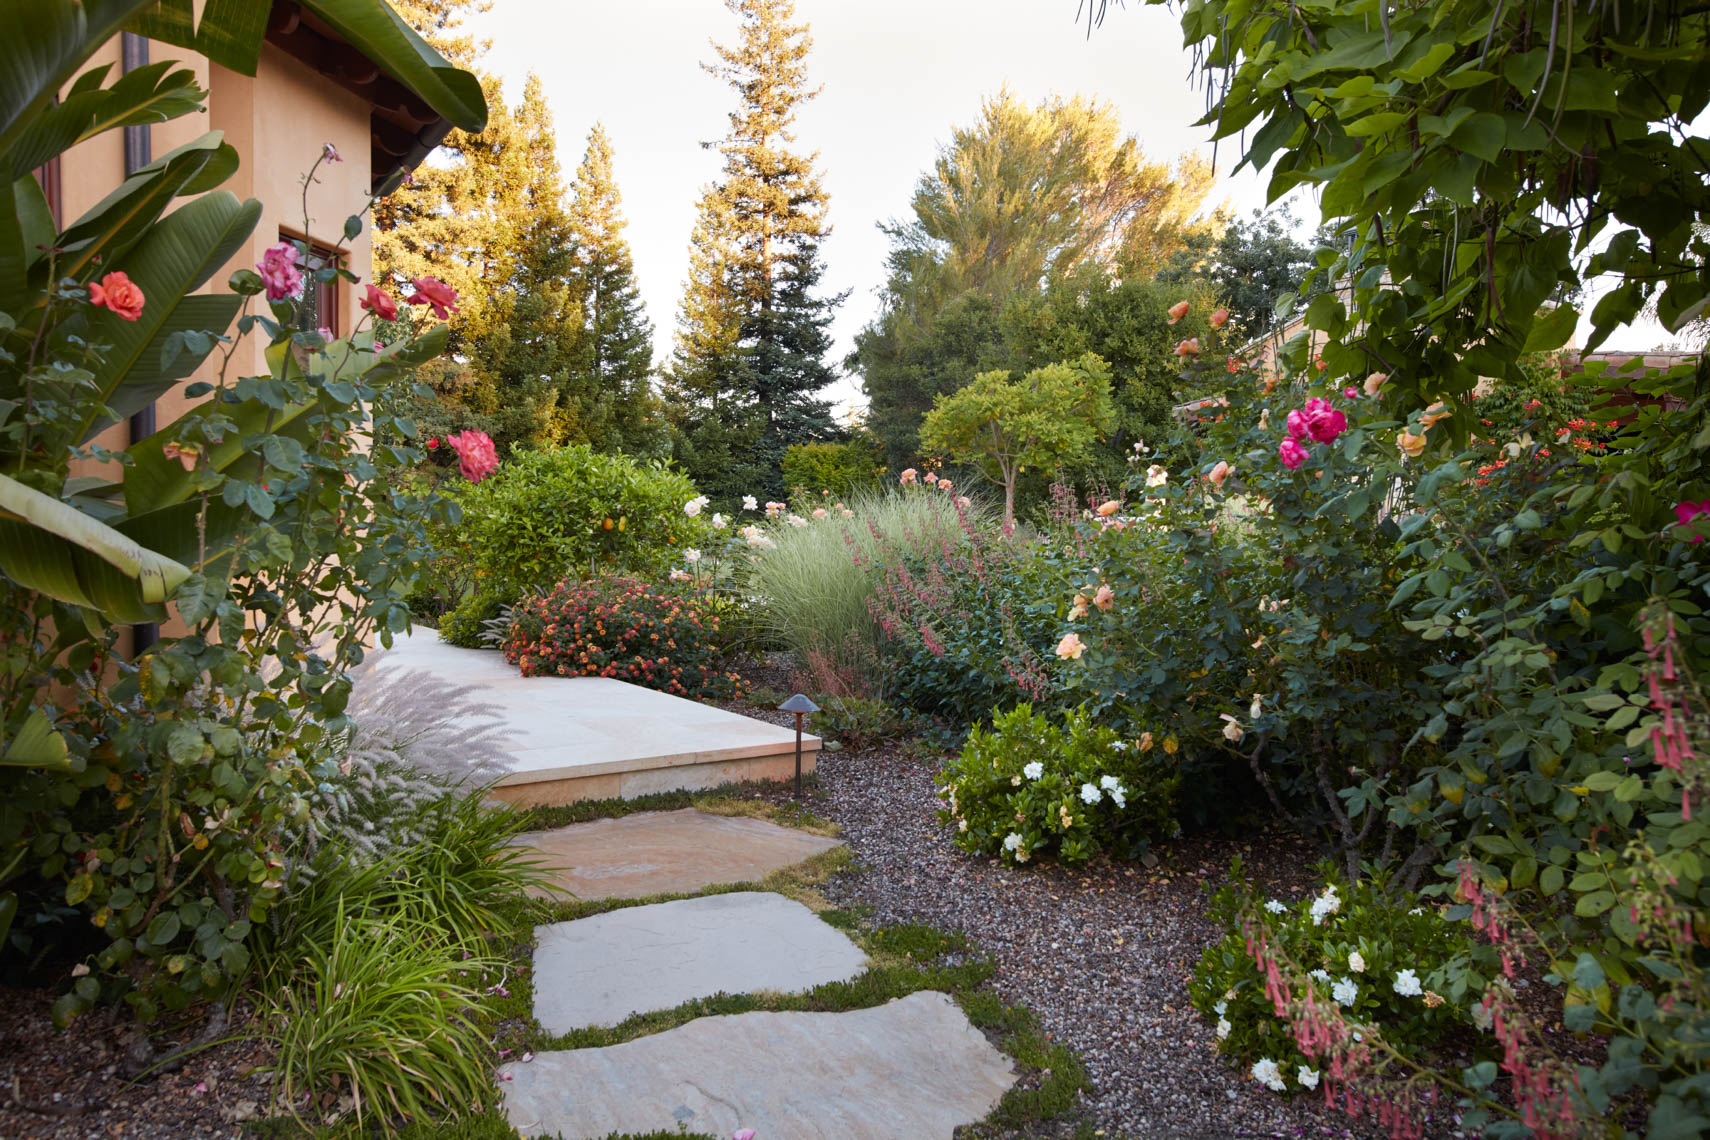 Curving garden path in yard with roses and green plants